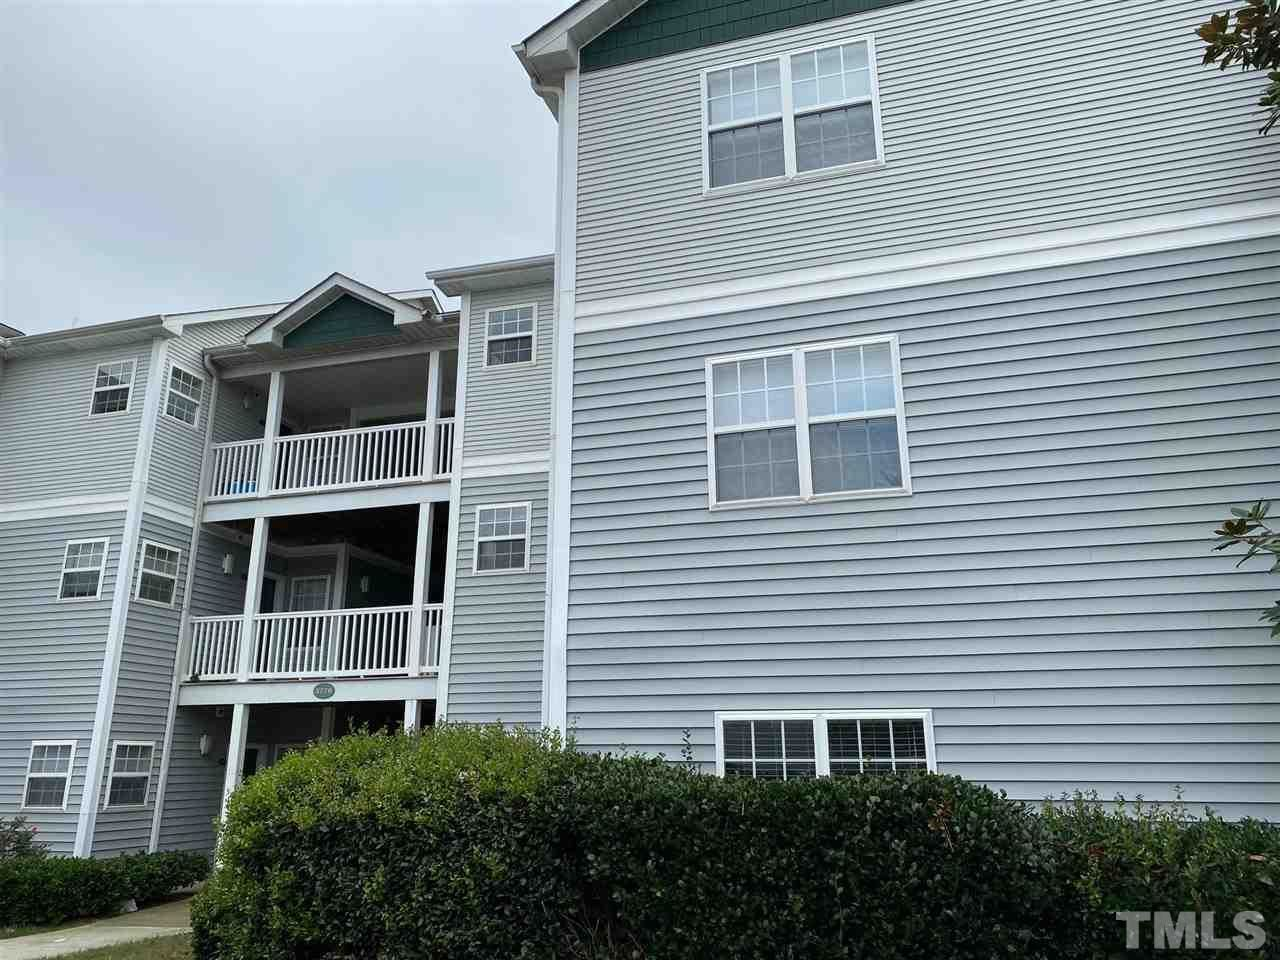 3770 Pardue Woods Place #201, Raleigh, NC 27603 - MLS#: 2343410